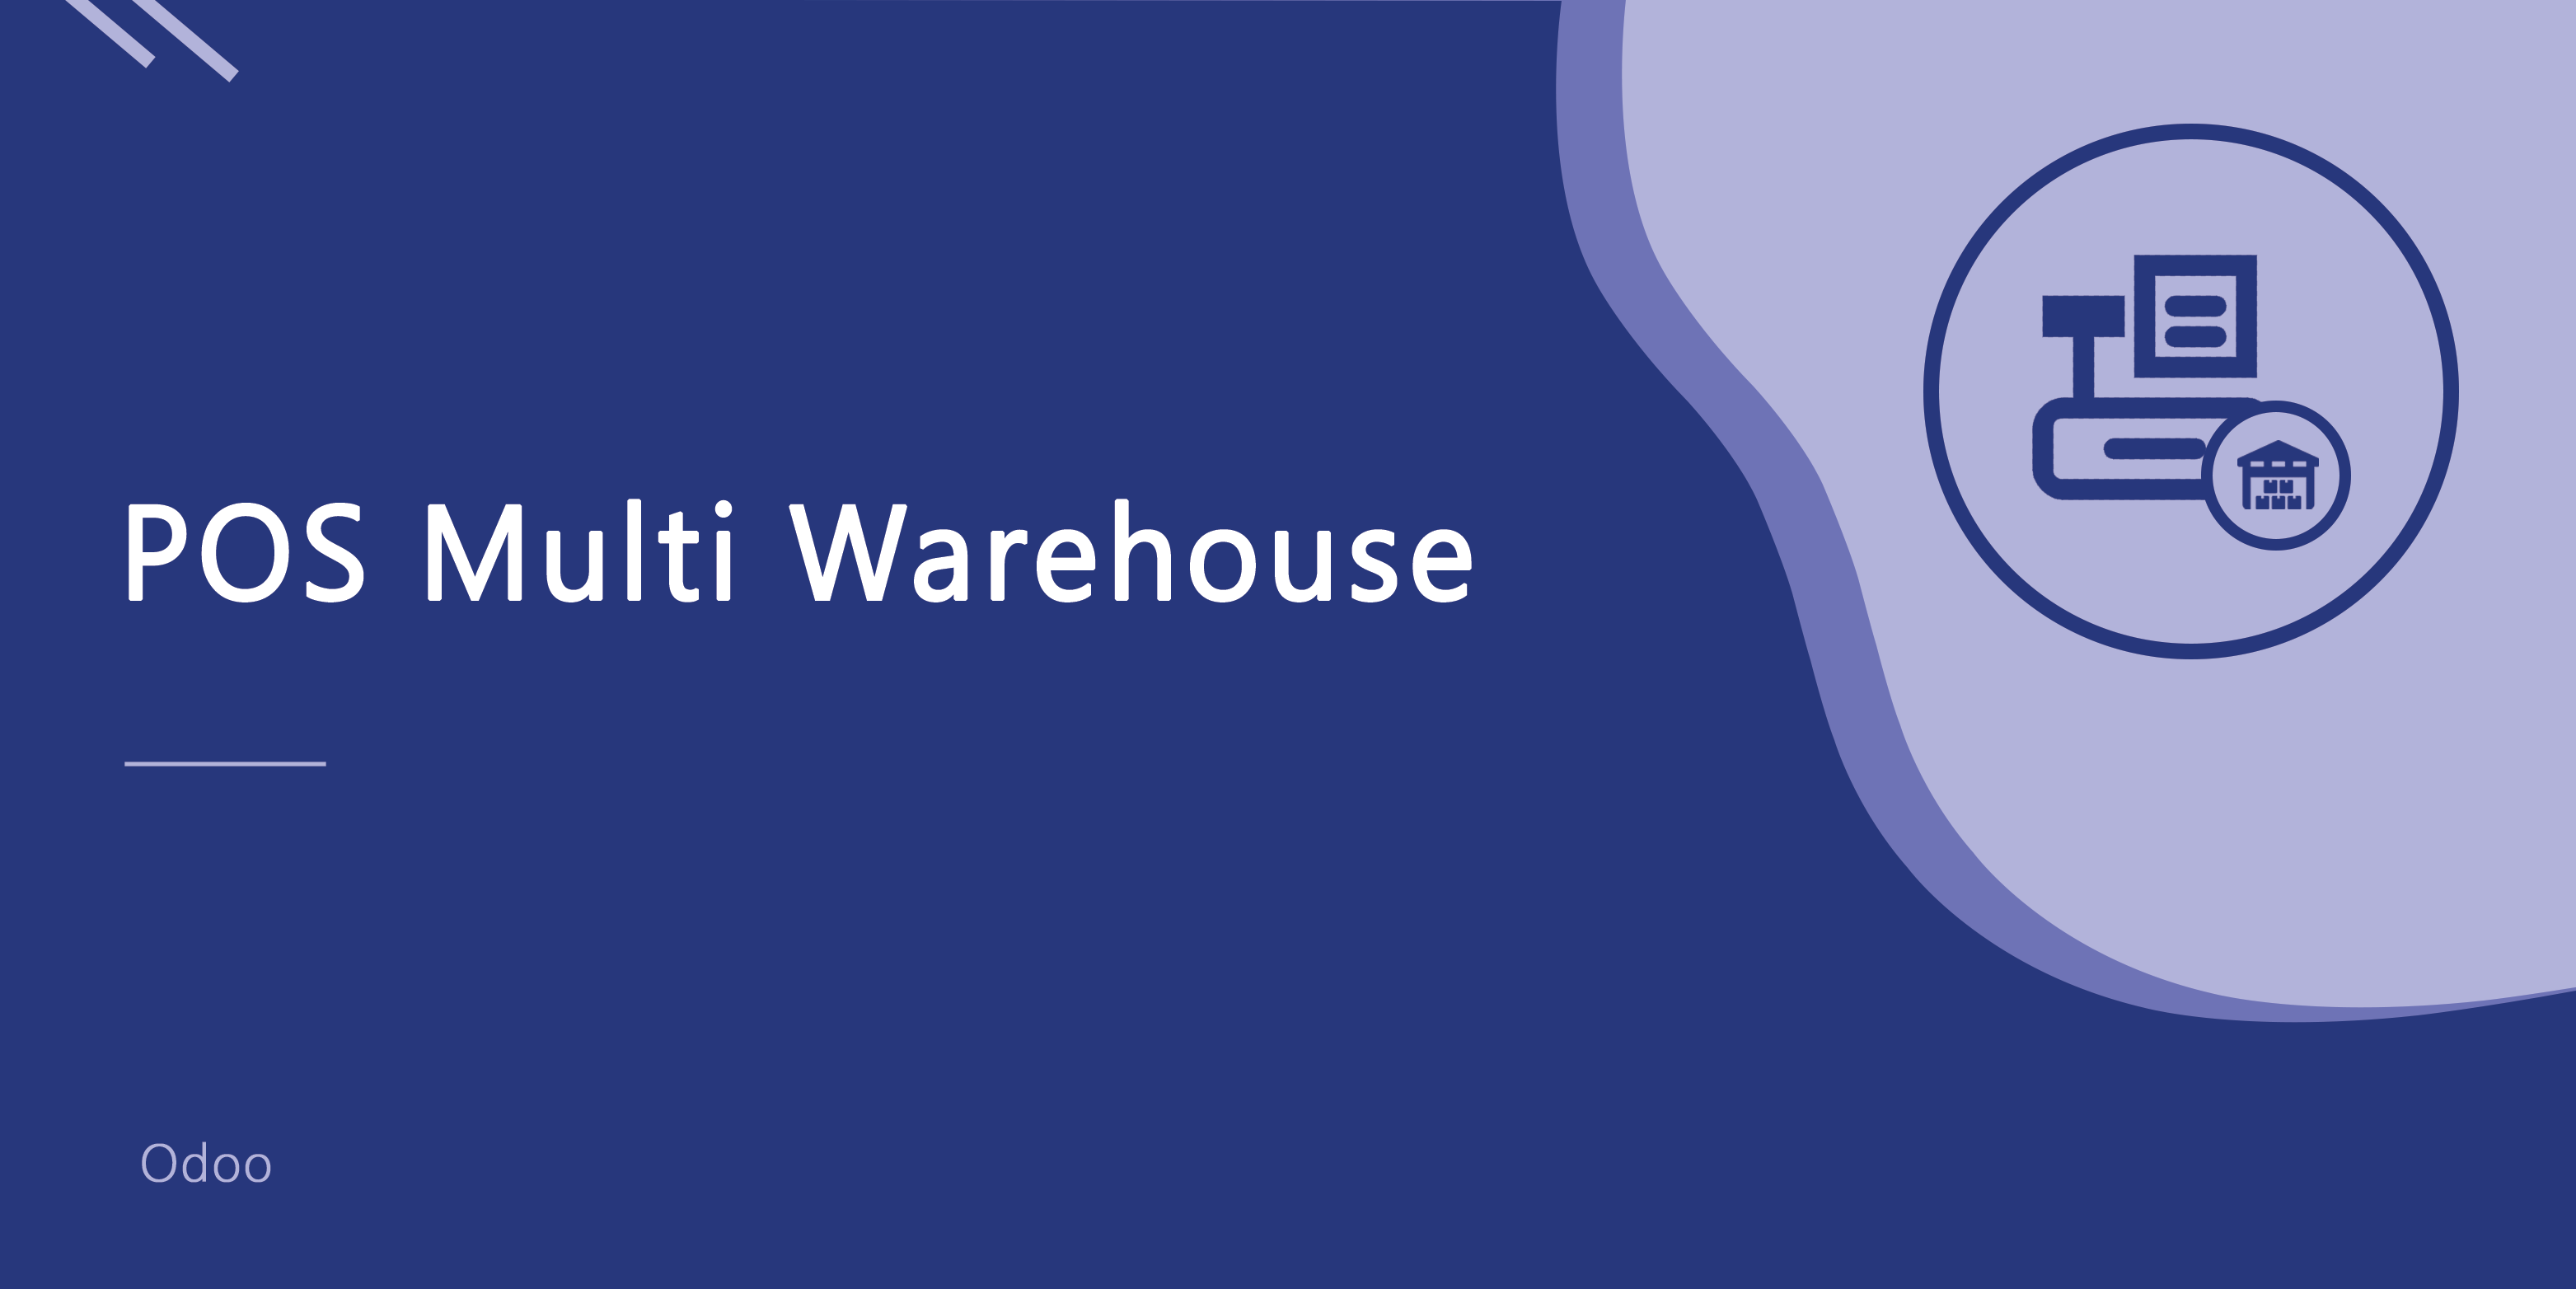 POS Multi Warehouse